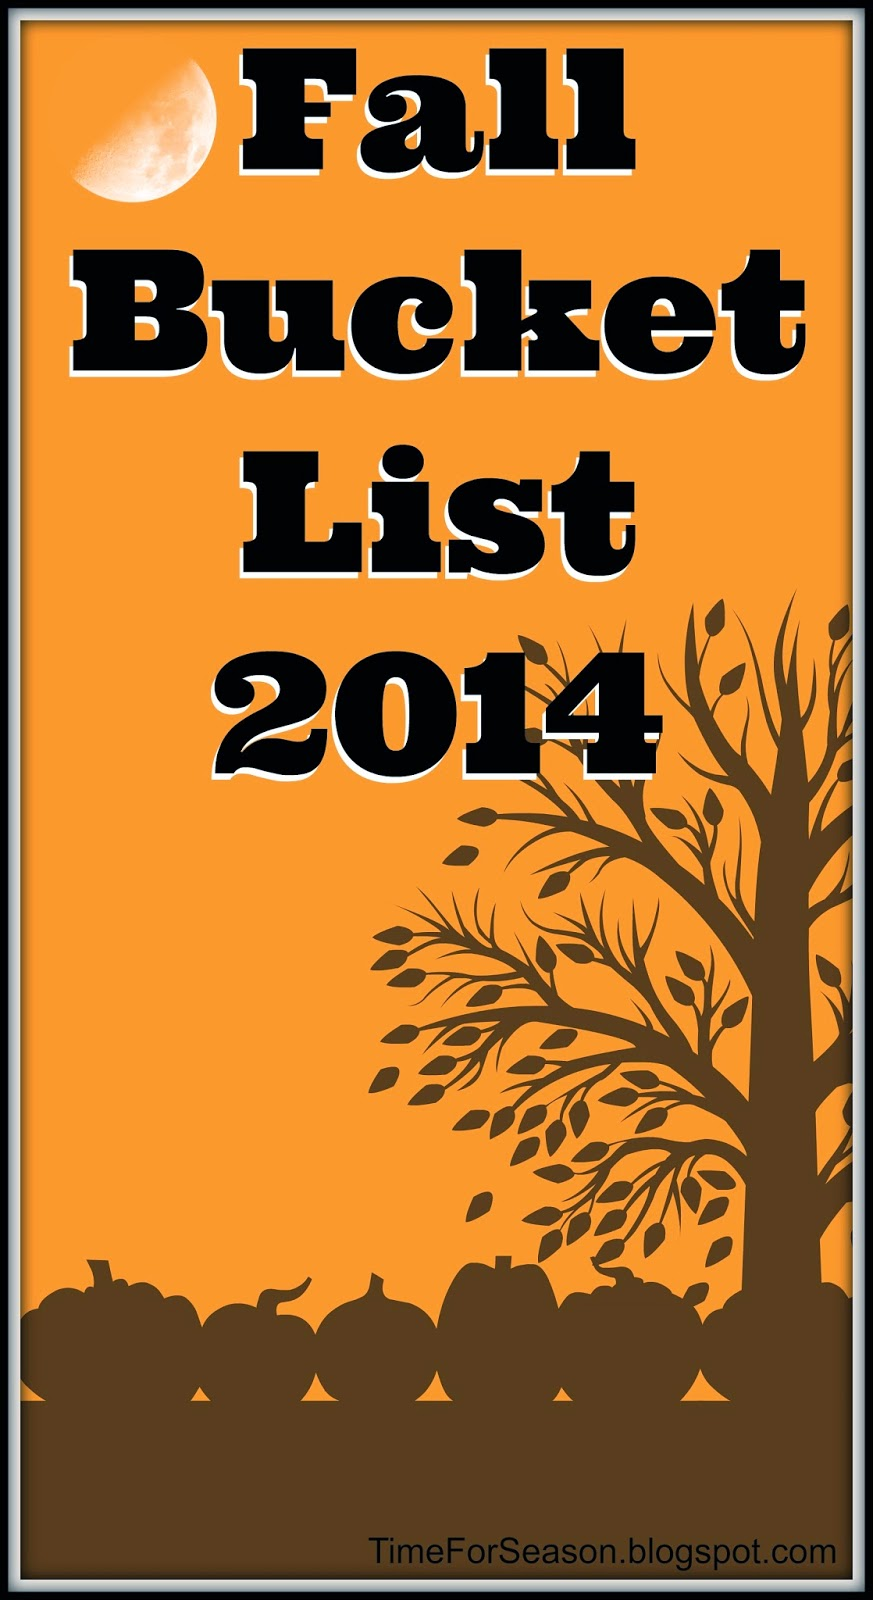 http://timeforseason.blogspot.com/2014/08/fall-bucket-list.html